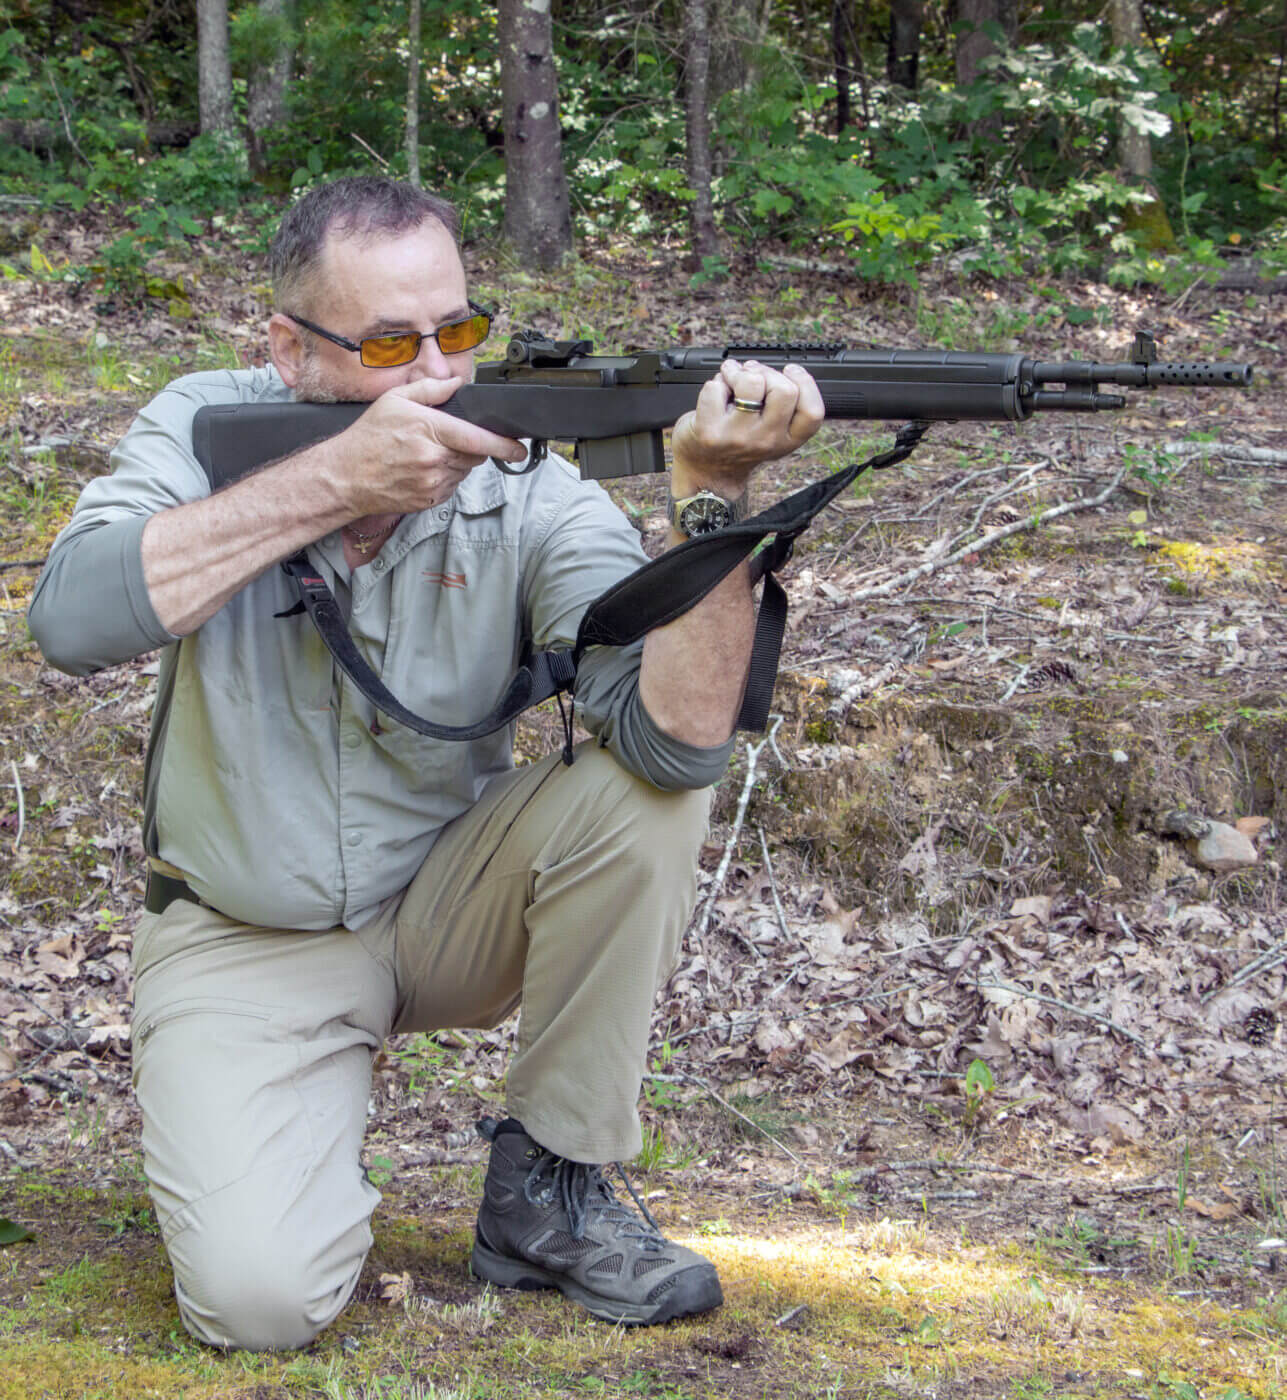 Man showing how to shoot a rifle while kneeling